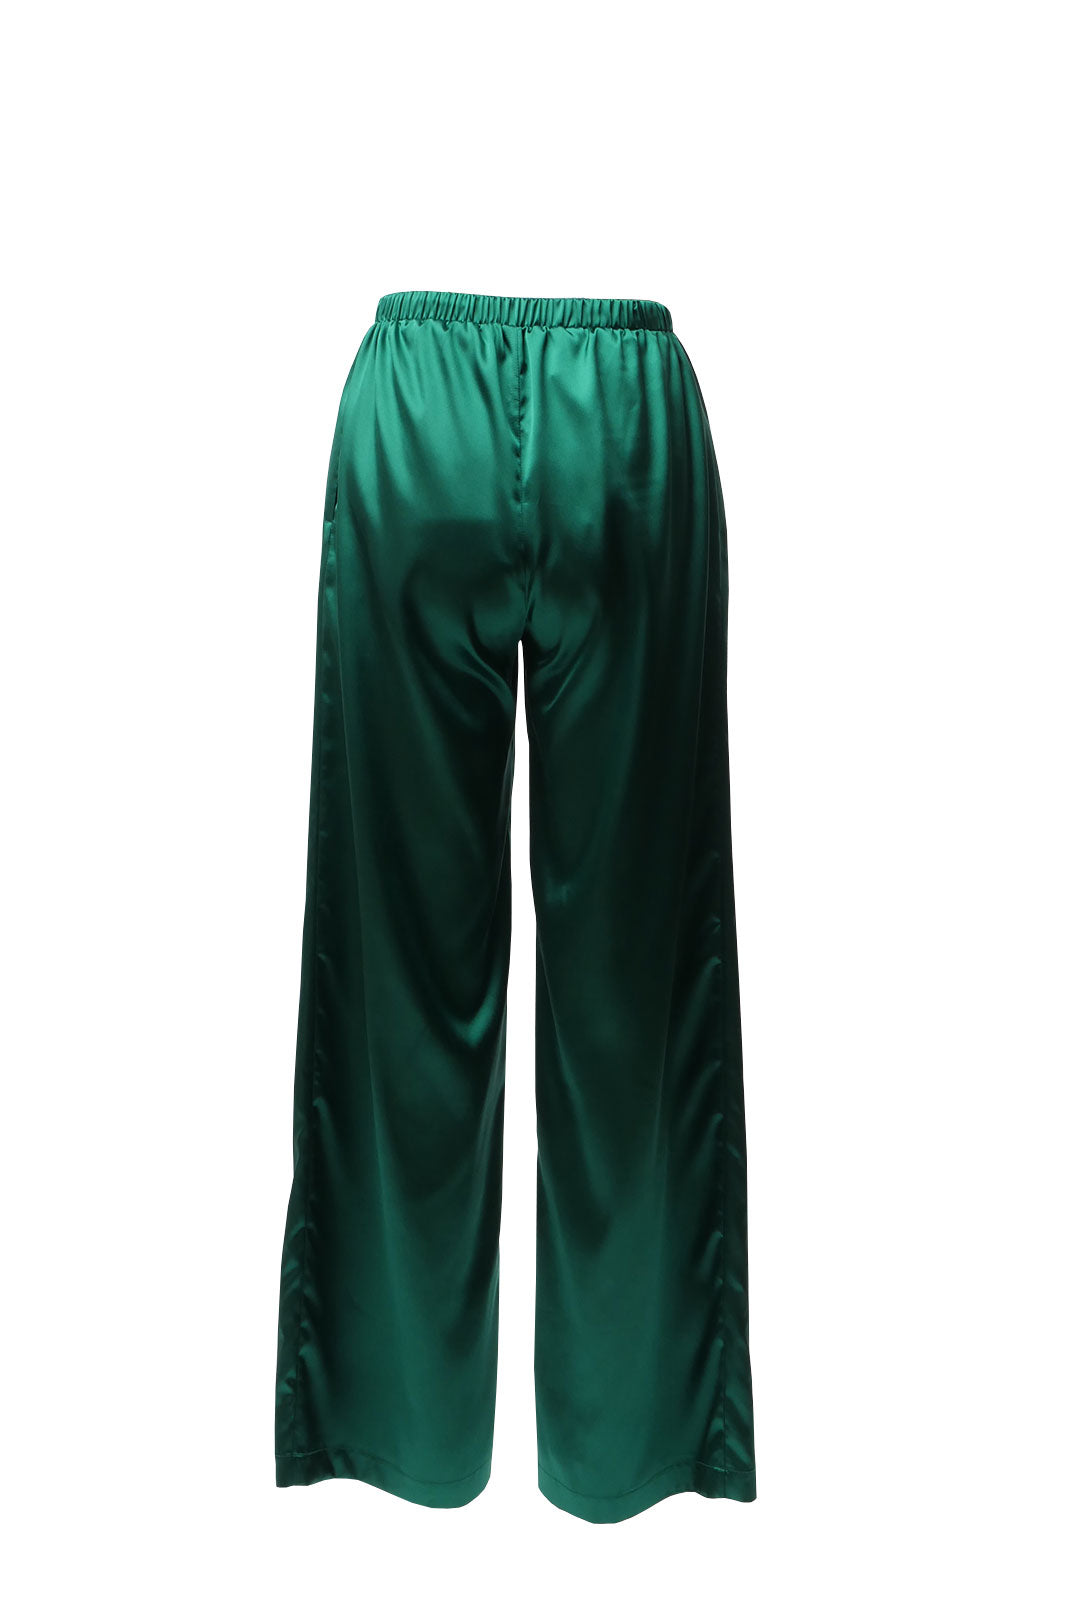 NUDIST | Emerald green palazzo pants